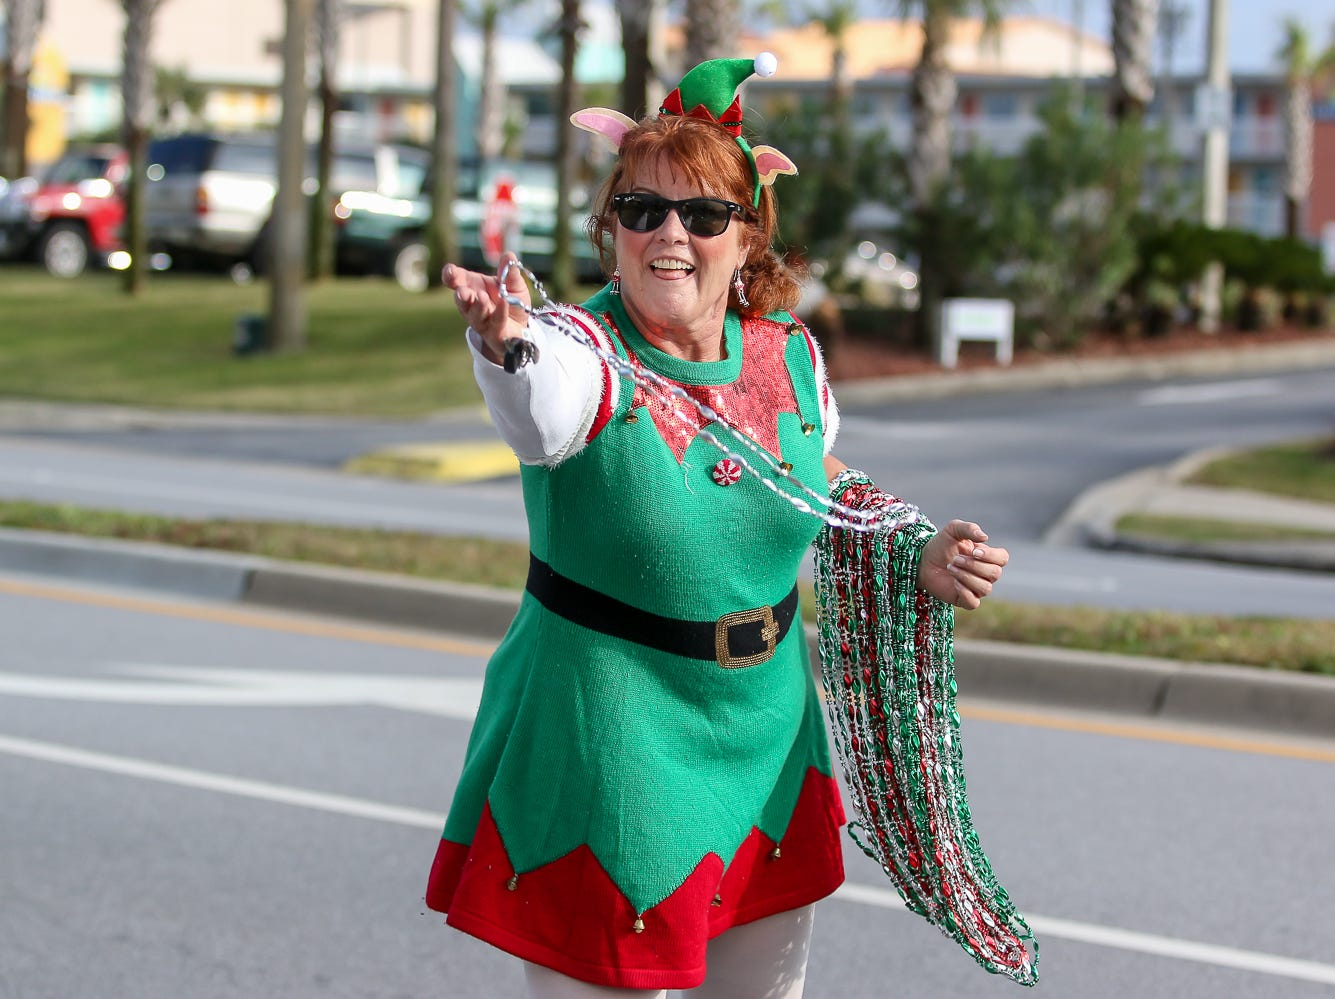 The Pensacola Beach Chamber of Commerce's annual Surfing Santa Beach Parade delights people on Sunday, December 2, 2018.